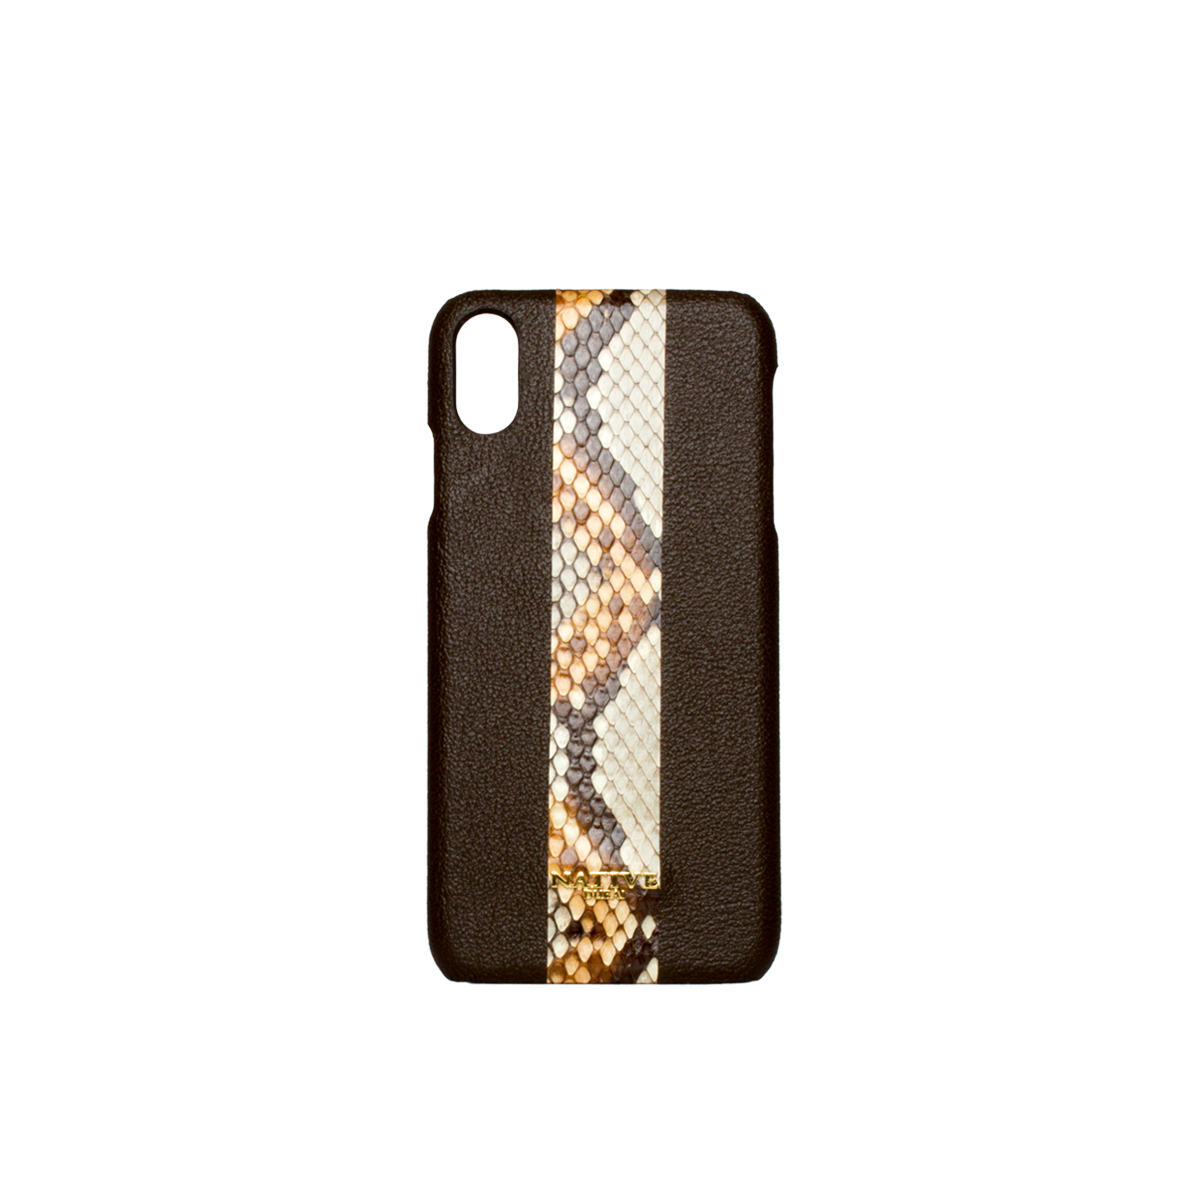 Phone Cases, iPhone XS Case in Camel hide & python in Brown